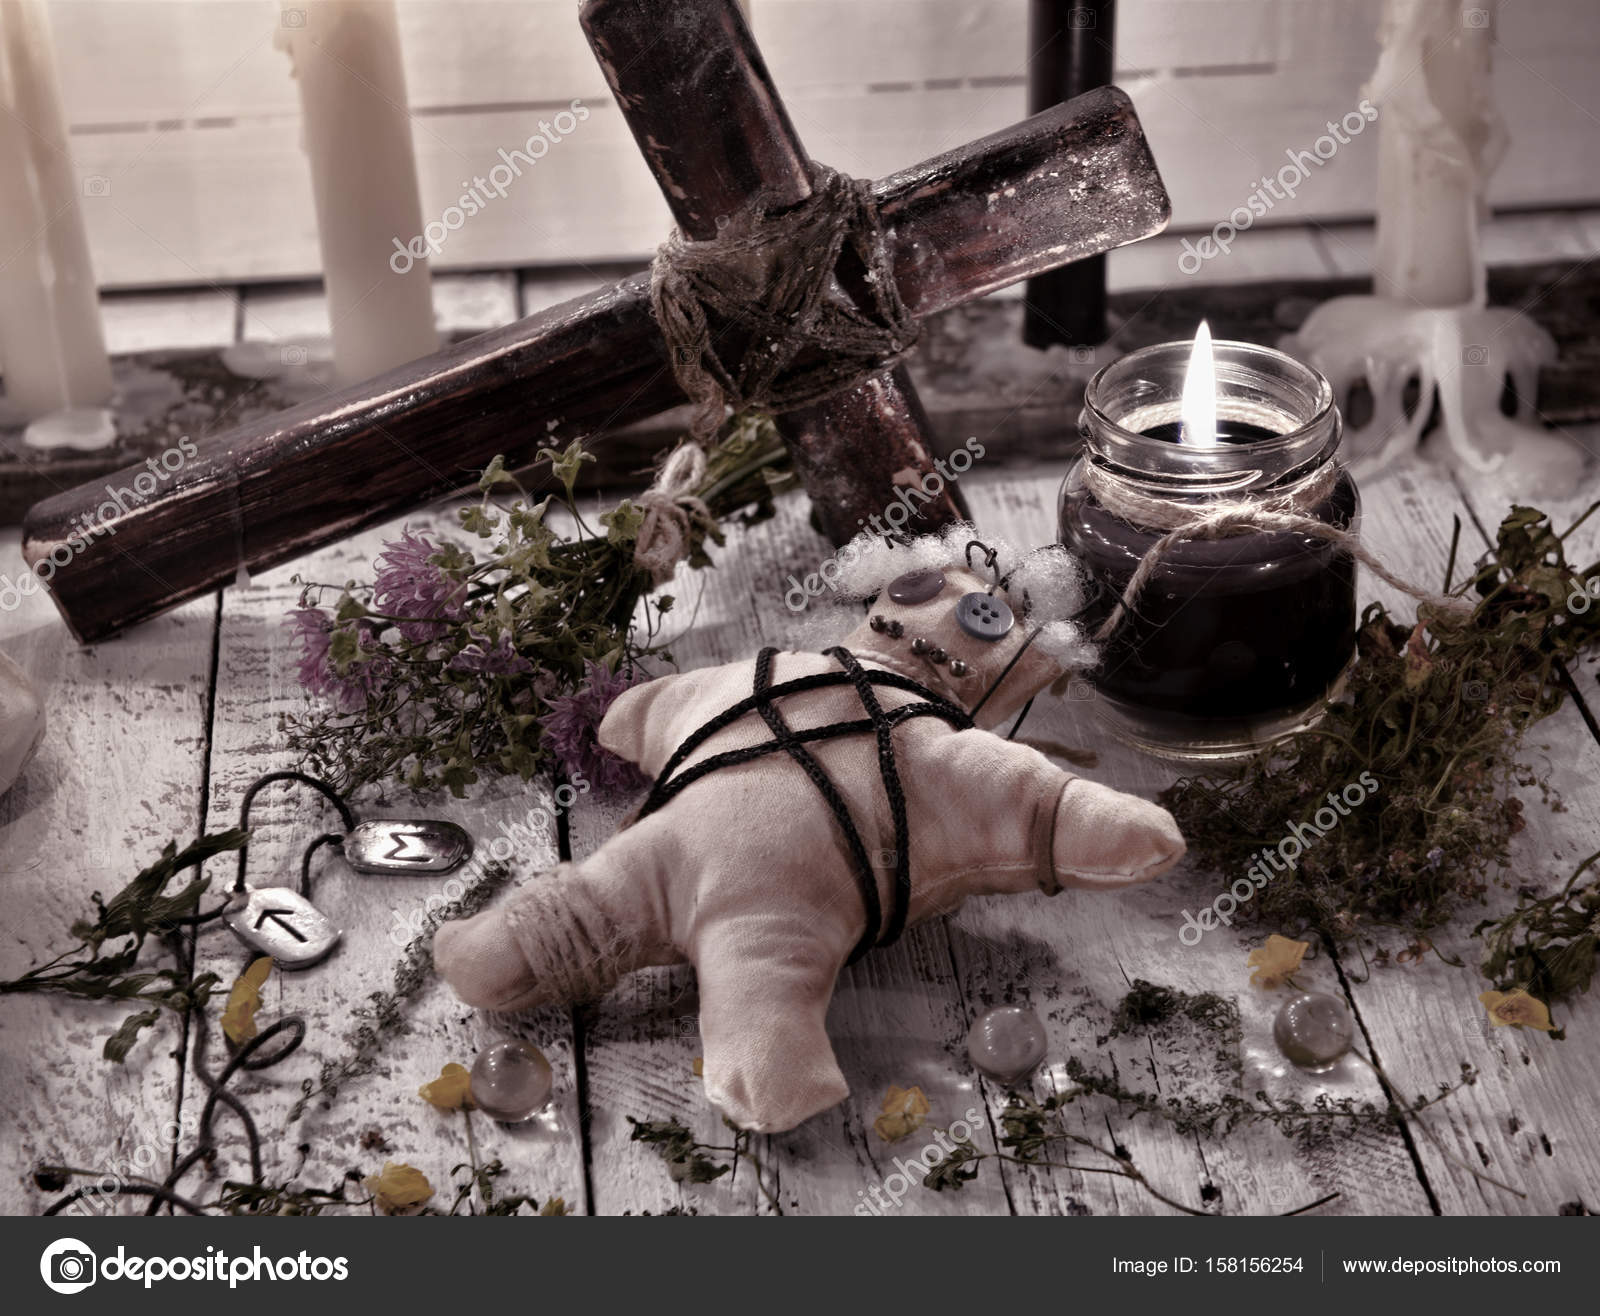 Voodoo Doll With Cross Herbs And Black Candle Stock Photo